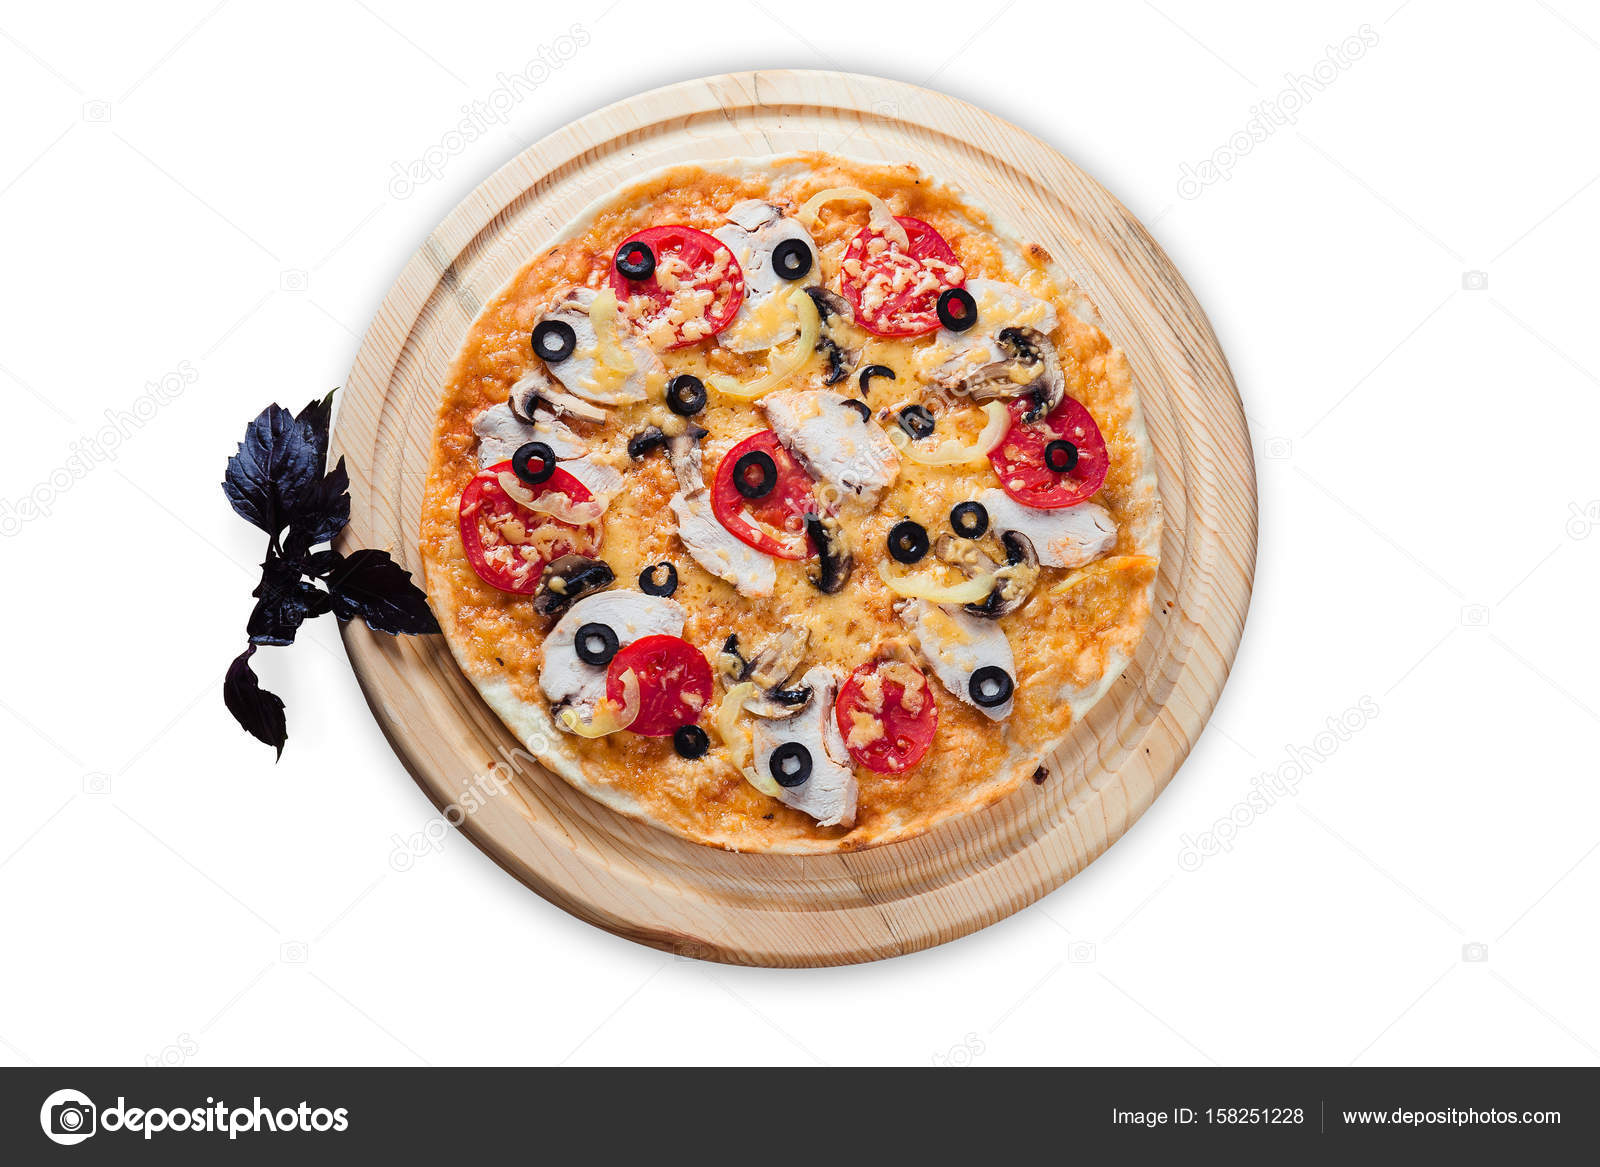 Pizza on round wooden plates on a white background u2014 Stock Photo  sc 1 st  Depositphotos & pizza on round wooden plates on a white background u2014 Stock Photo ...